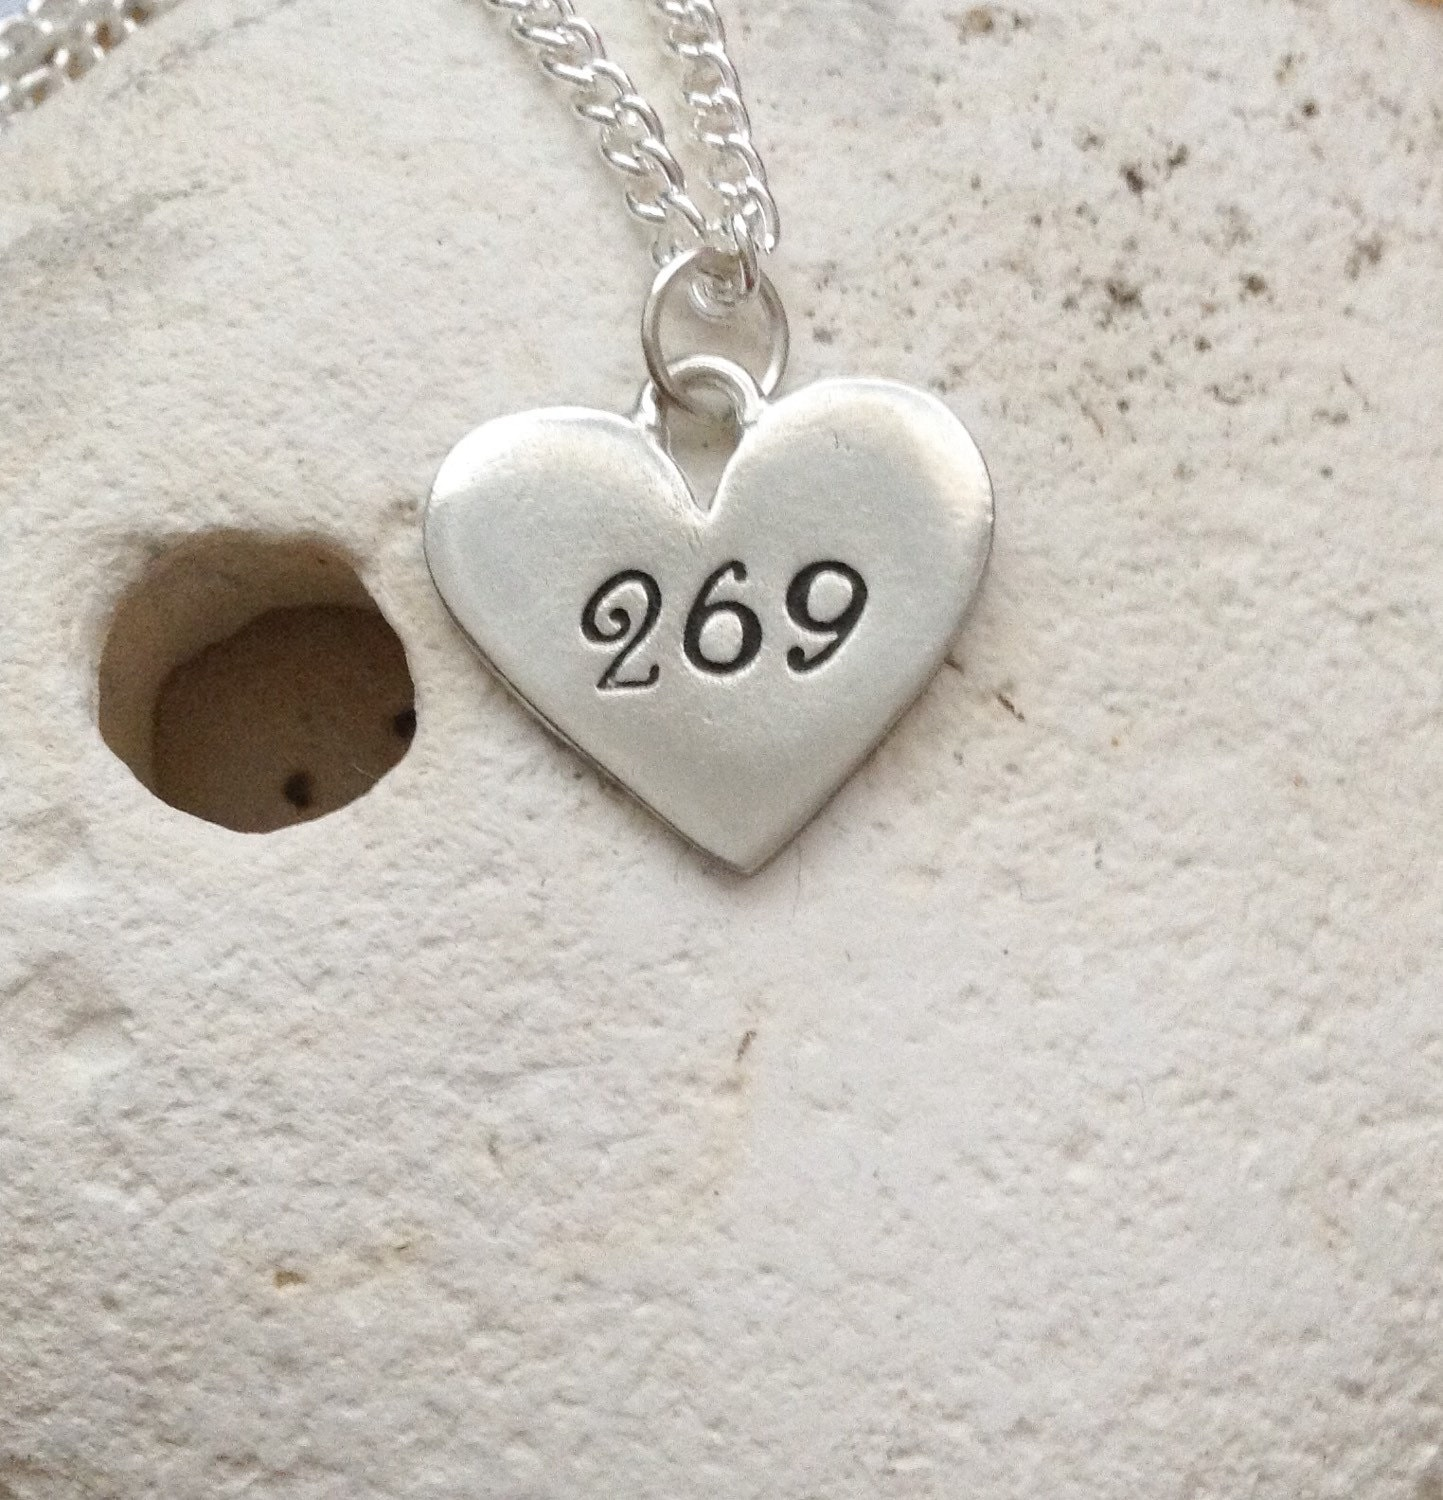 269 vegan heart necklace - 269 life vegan jewellery - jewelry - animal rights jewellery - handstamped pendant